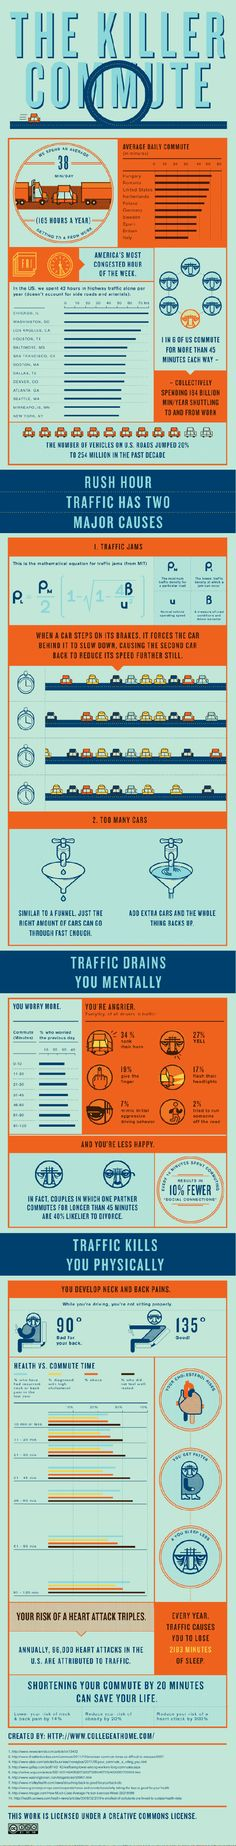 Long Commutes Are Sucking the Life Out of You: Shortening Yours by 20 Minutes Could Save Your Health #infographic